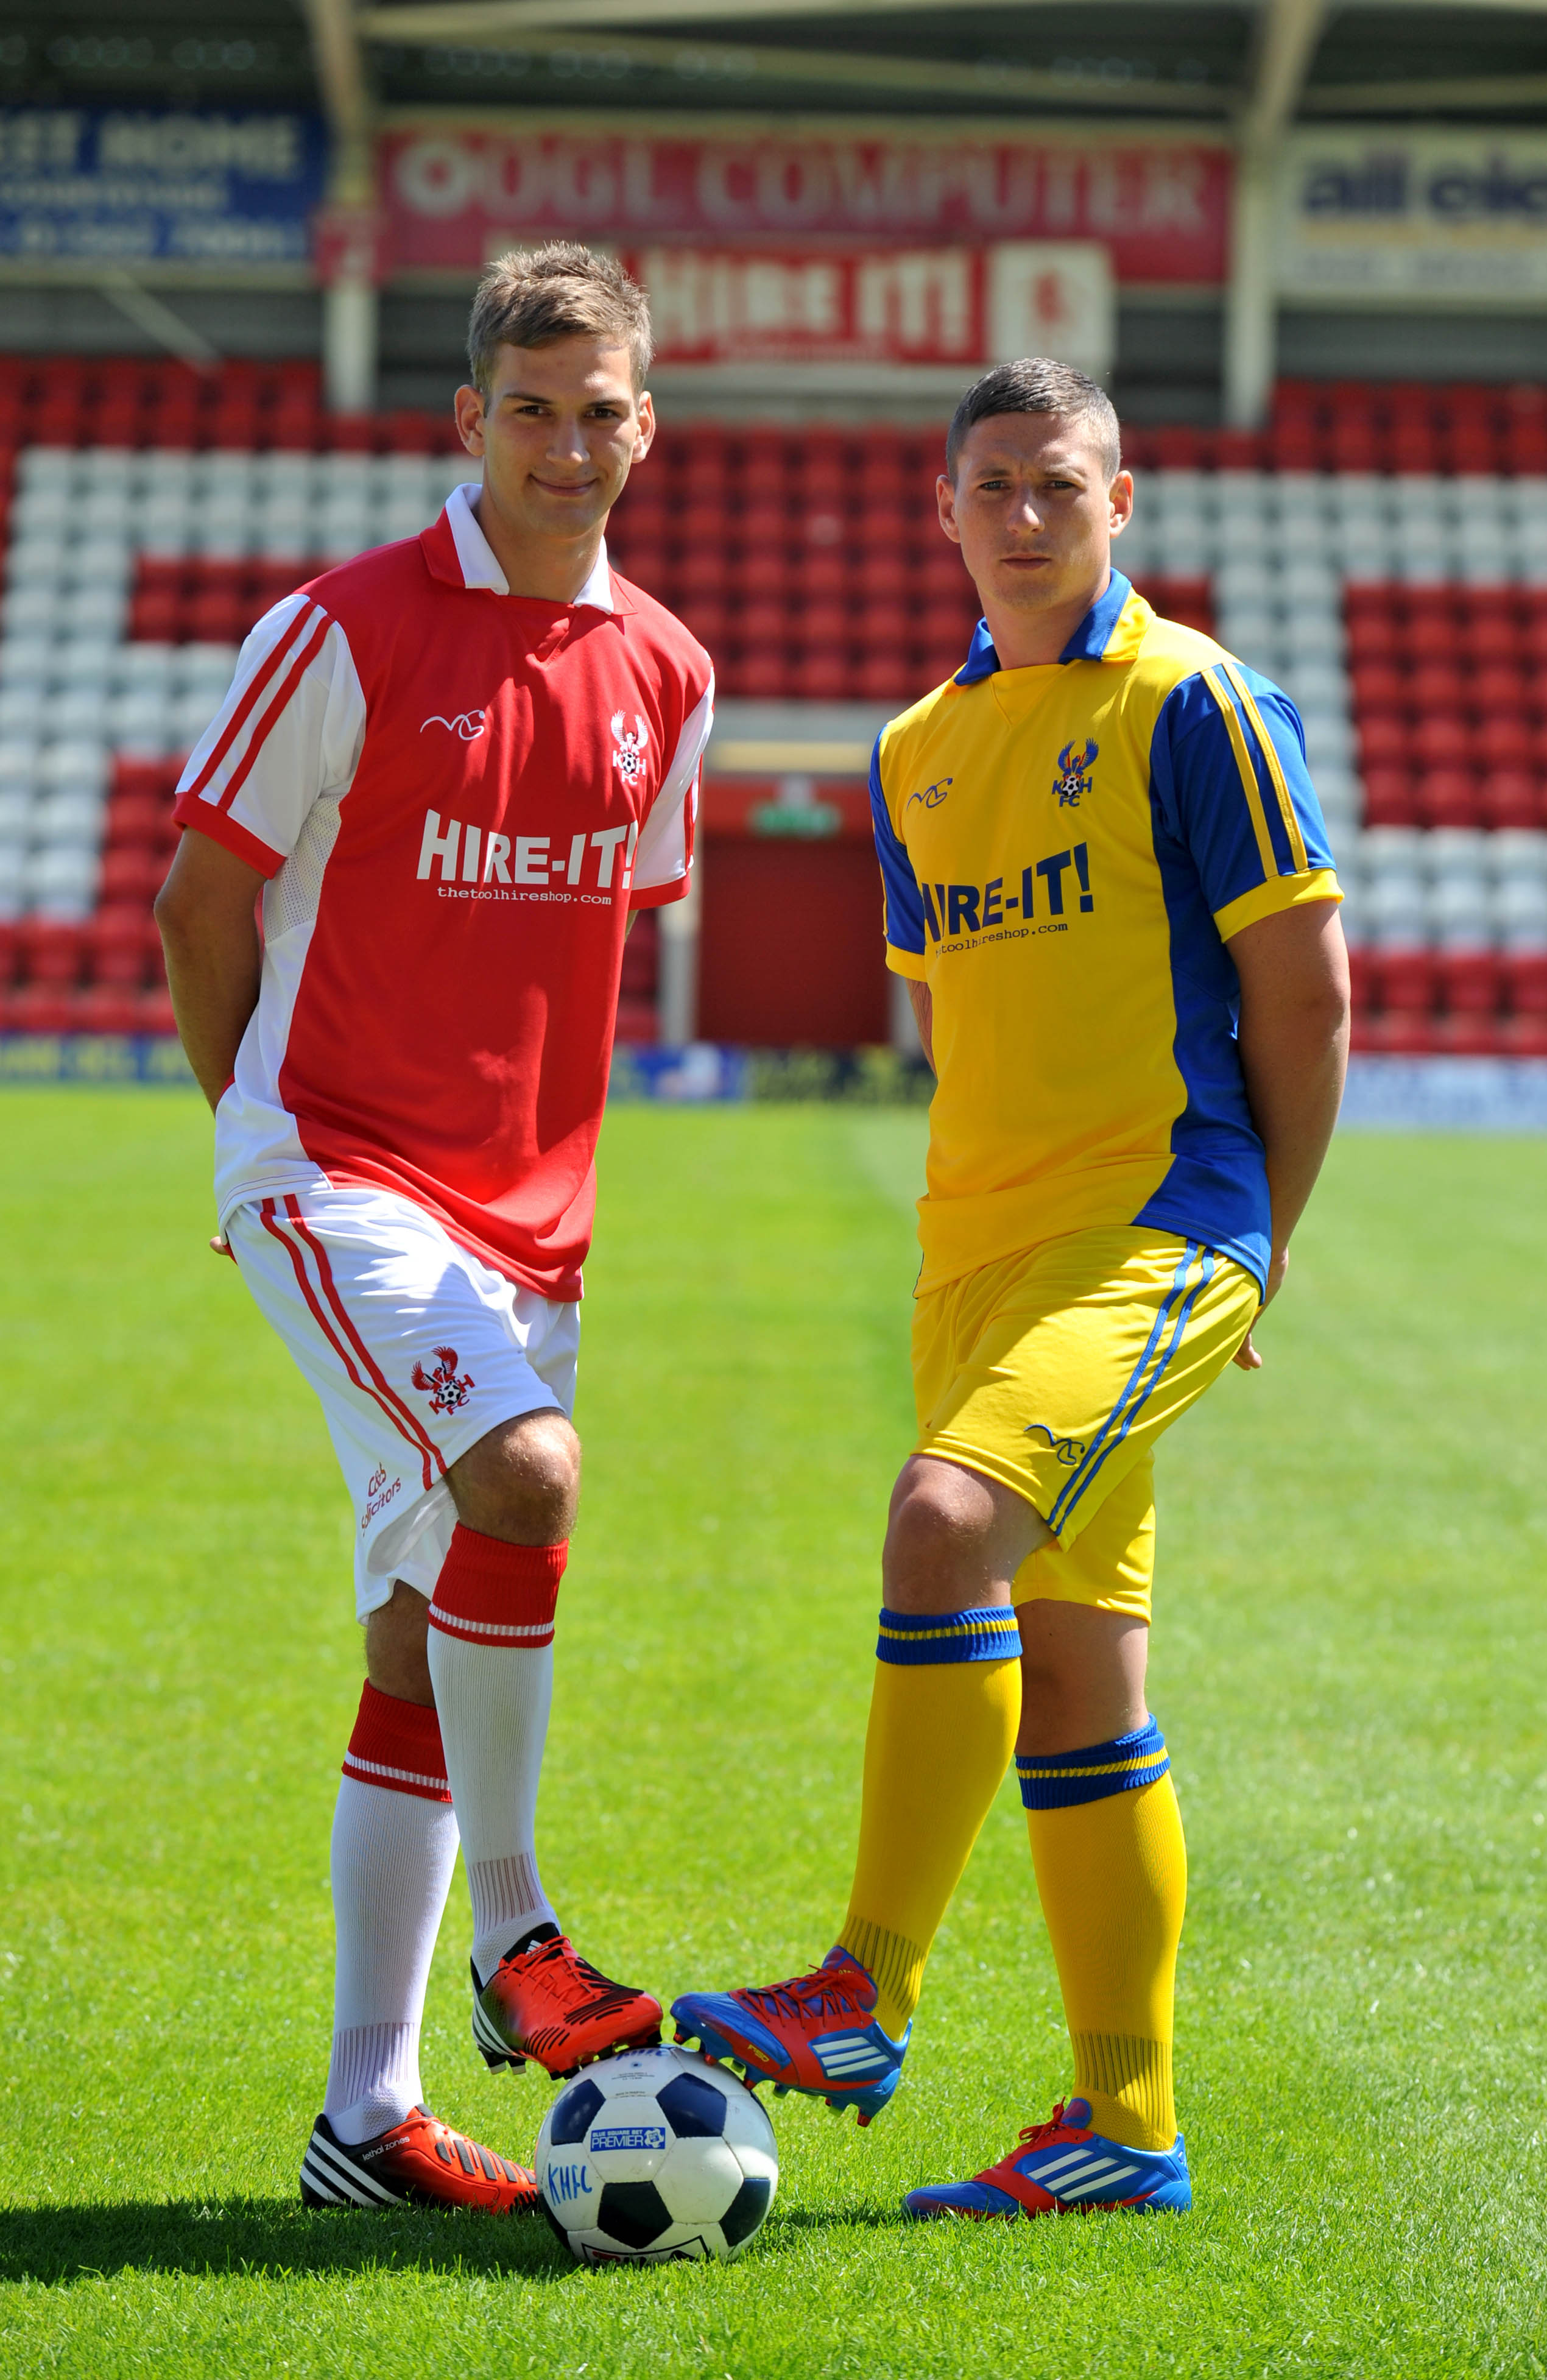 Harriers Kit launched!